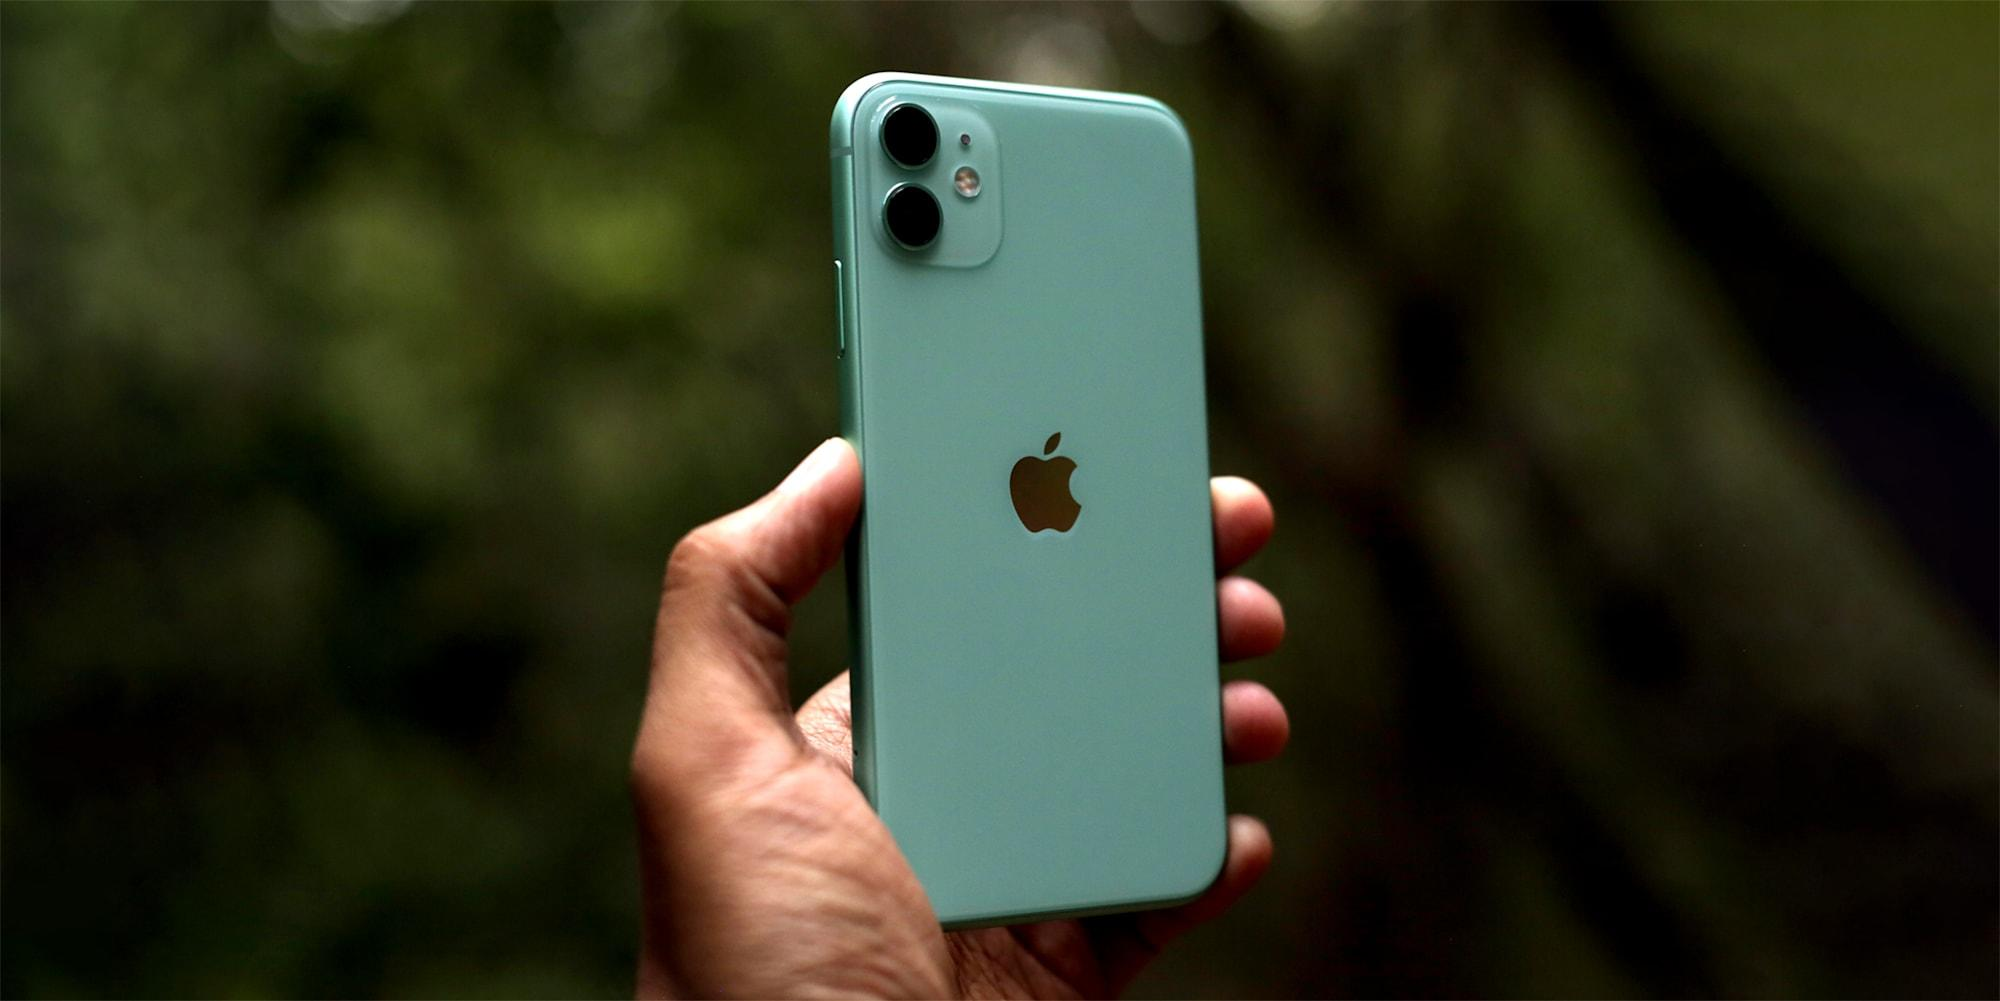 Apple iPhone 11 review: So good you (probably) don't need the Pro